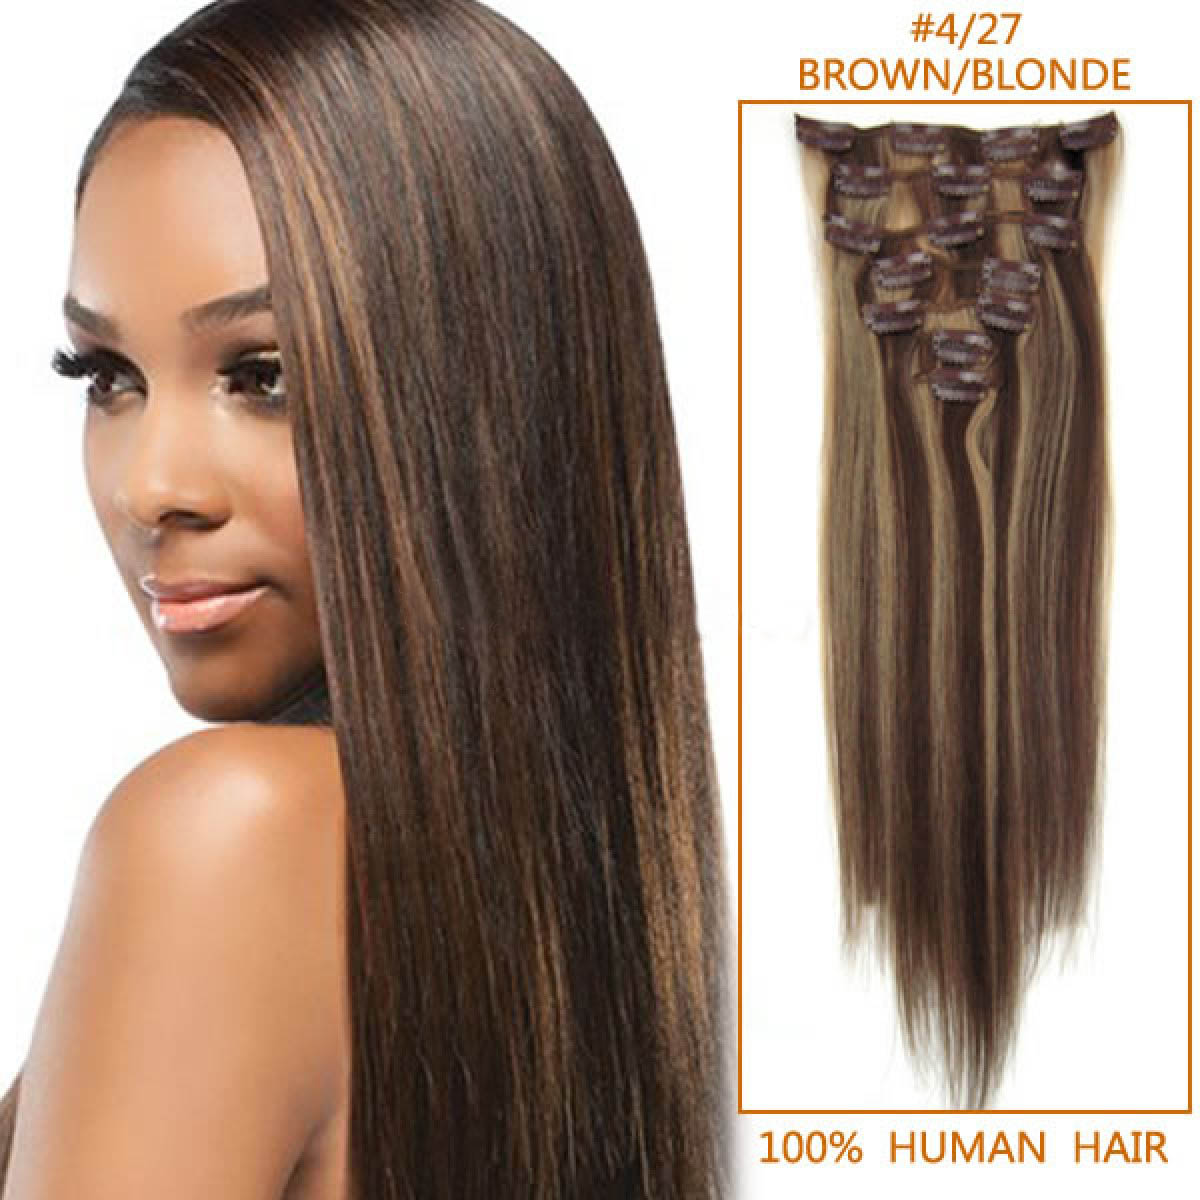 28 Inch 427 Brownblonde Clip In Human Hair Extensions 10pcs